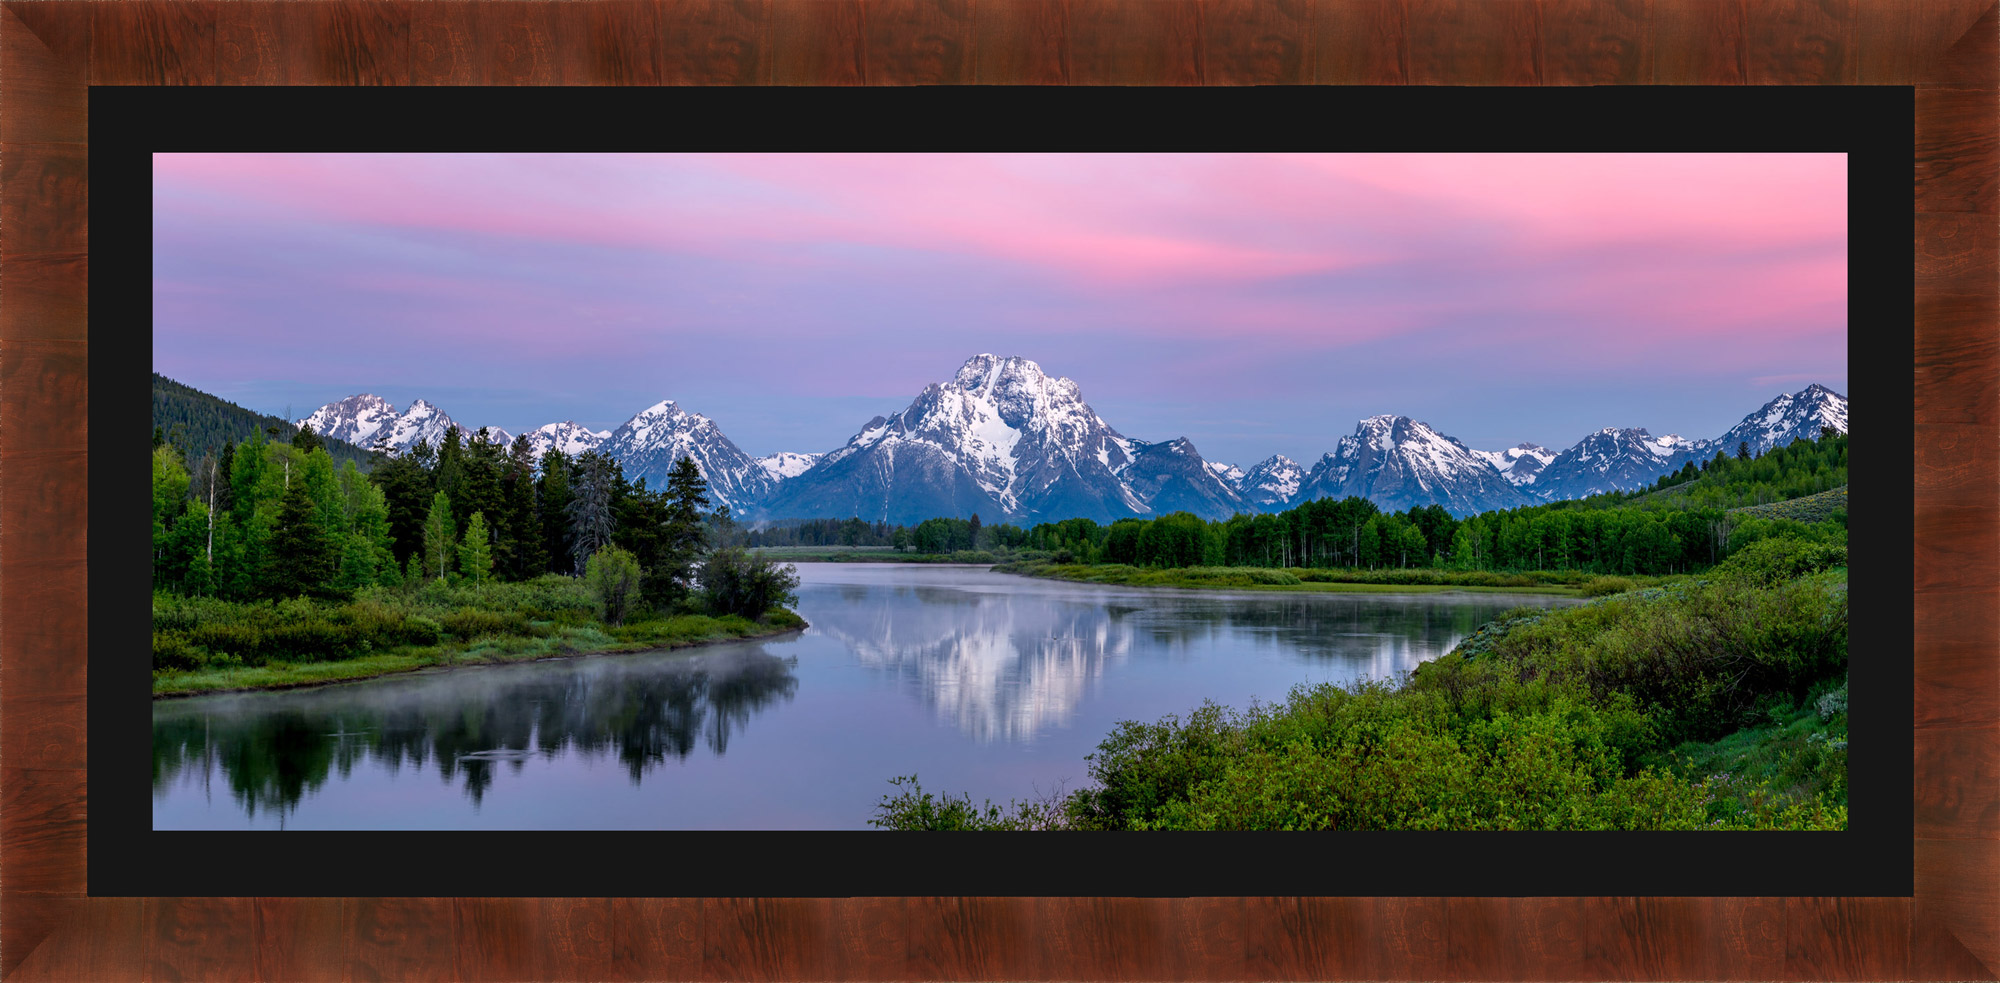 Framed photo of Oxbow Bend with black mat